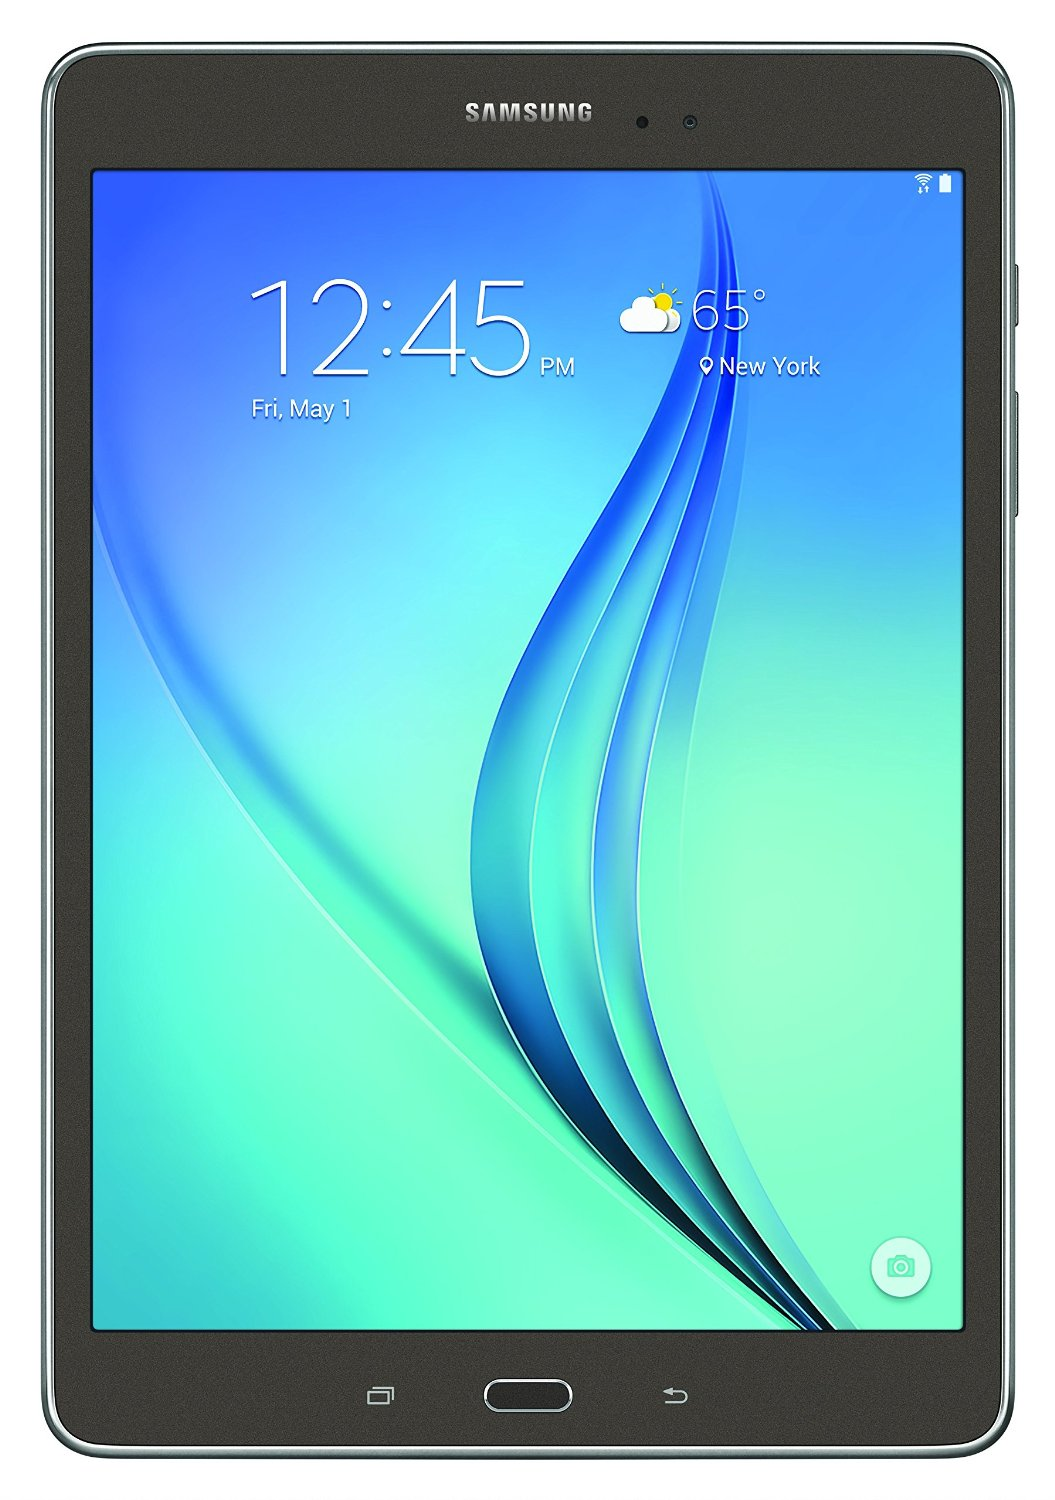 cheap tablets, tablets, best tablets, Amazon Black Friday Deals, Amazon black friday, black friday 2015, Black Friday Deals, tablet black friday deals, black friday sales